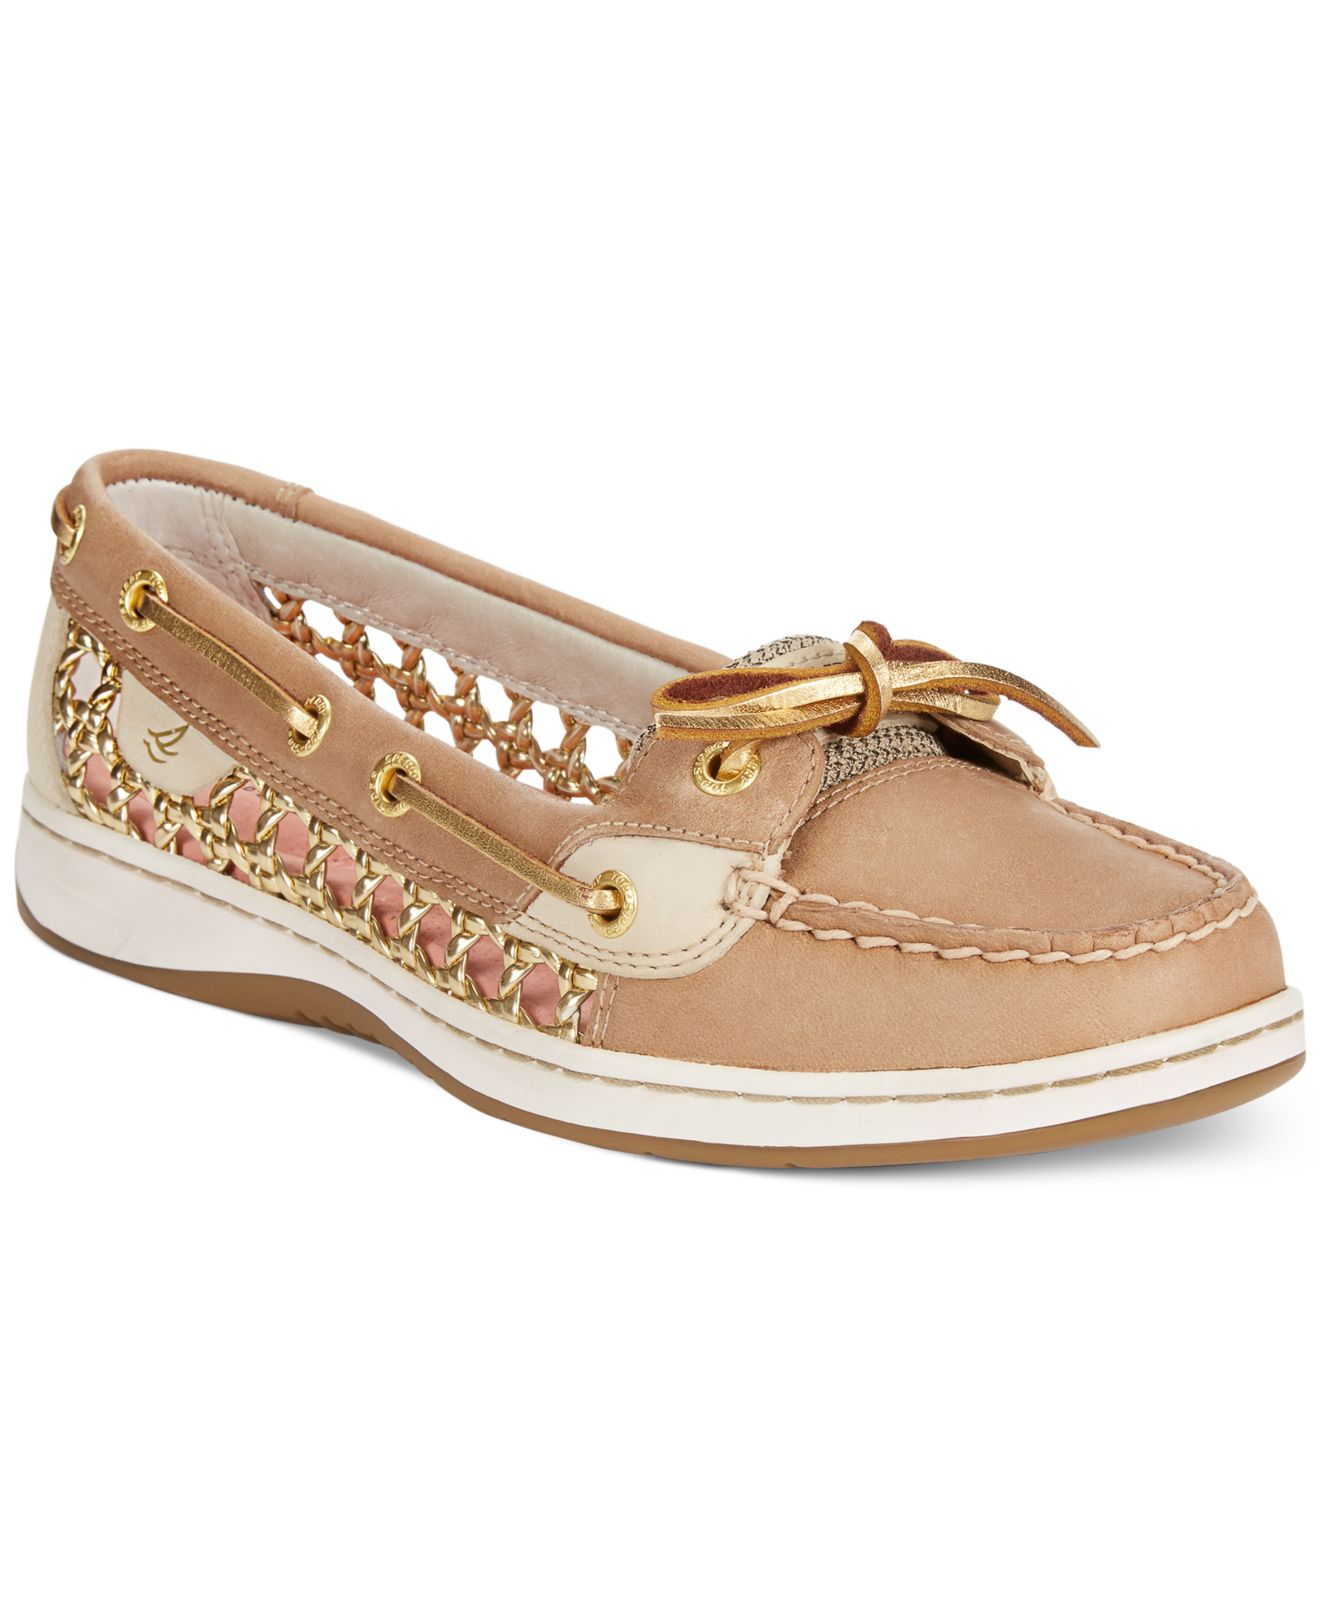 Angelfish Boat Shoes